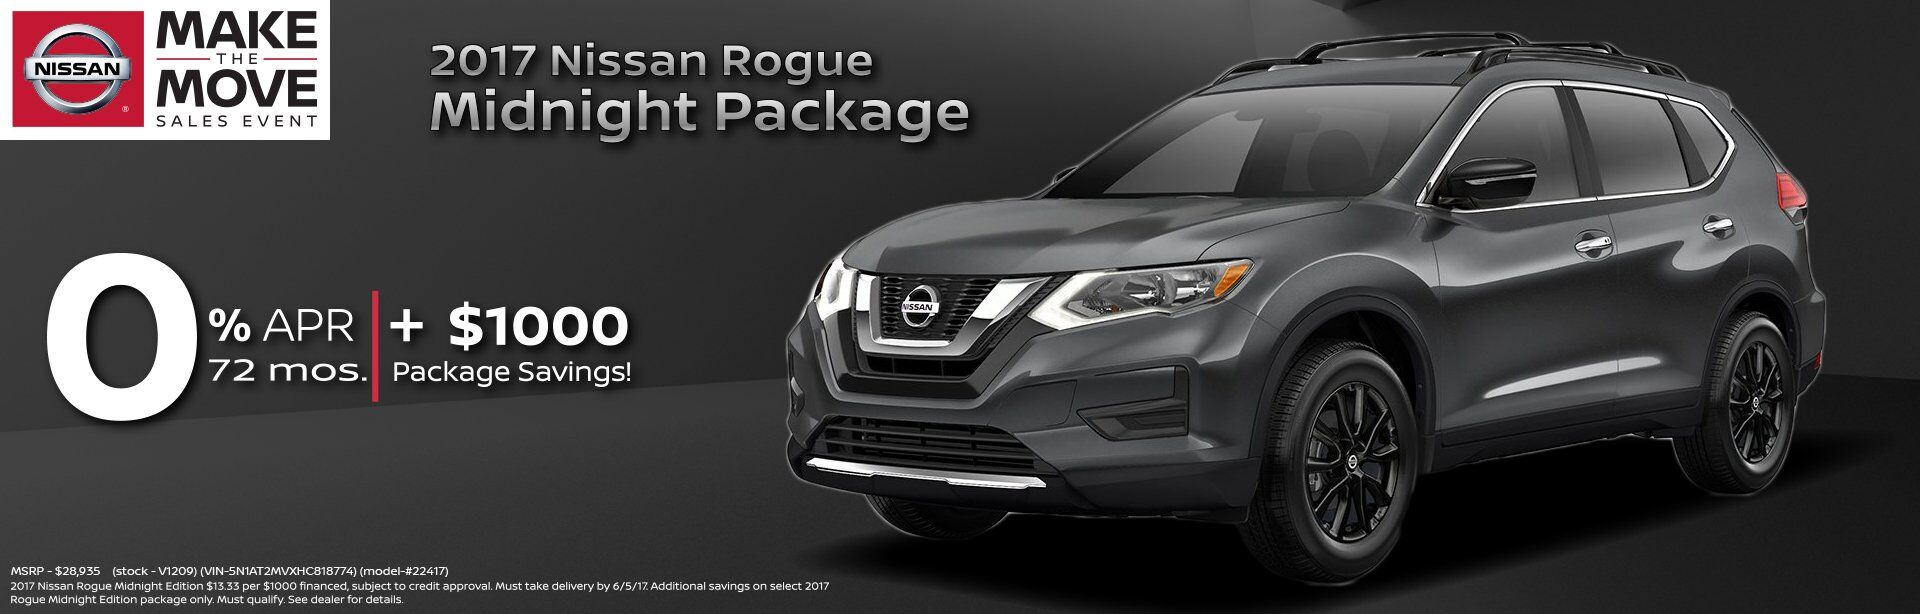 Rogue Midnight Package